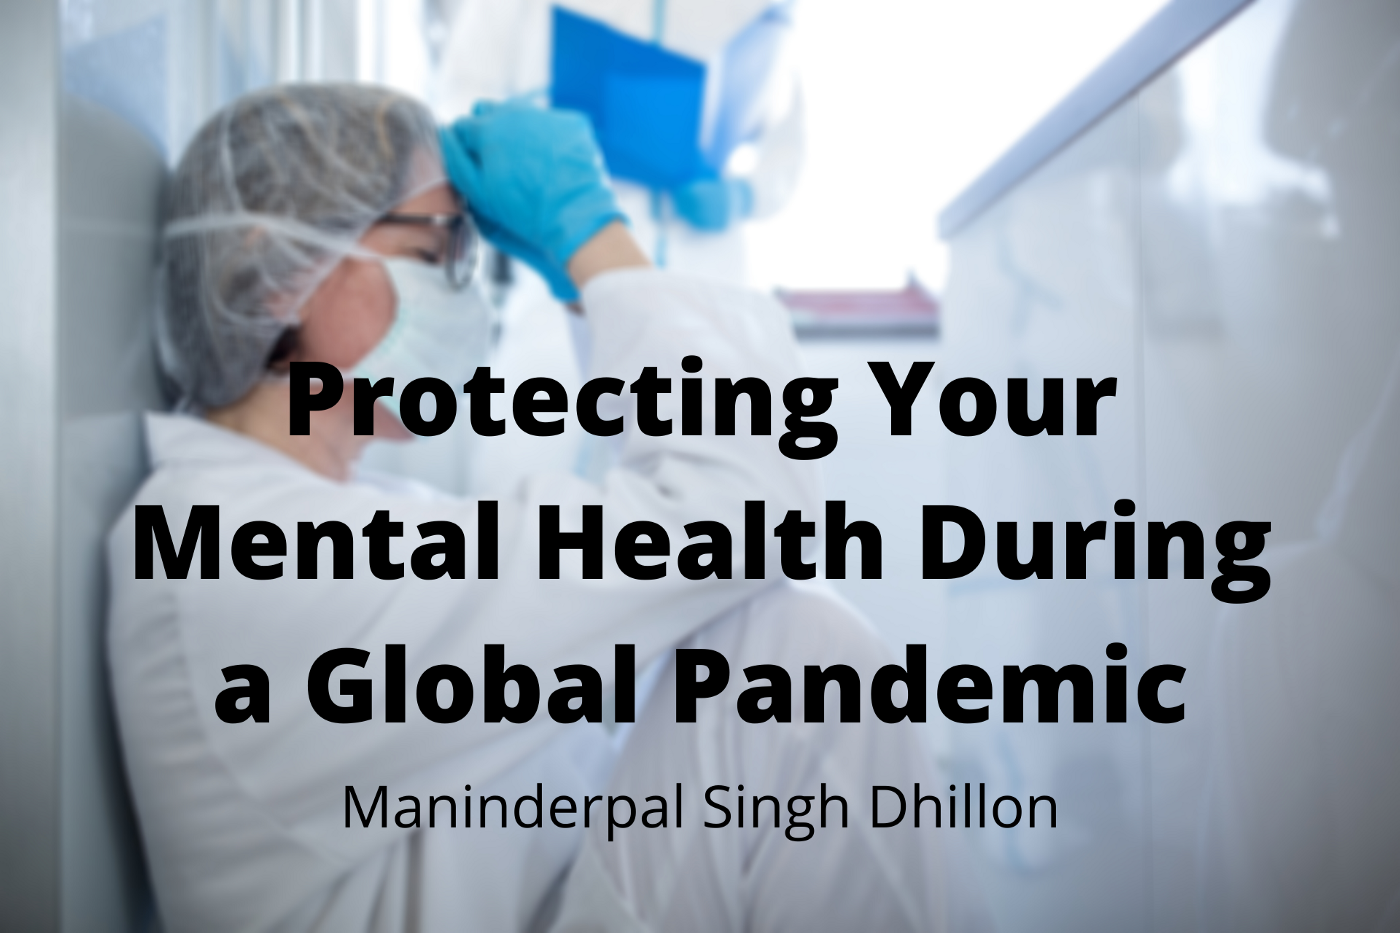 Maninderpal Singh Dhillon cover image featuring a stressed medical worker